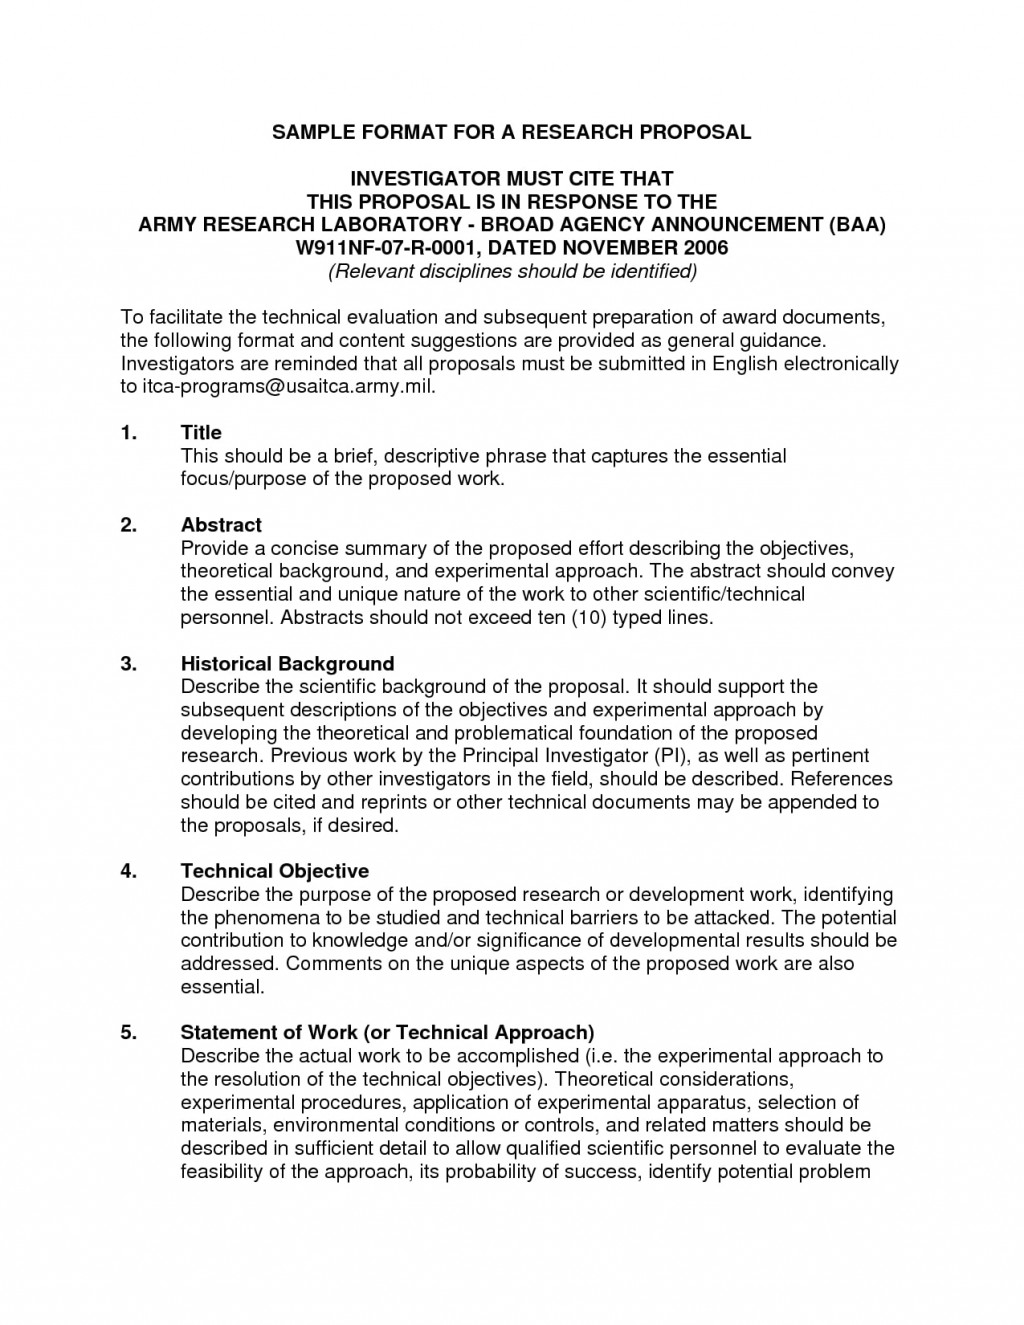 003 6781019586 Action Research Proposal Sample Pdf Paper How To Write Sensational Scientific And Publish A Computer Science Large